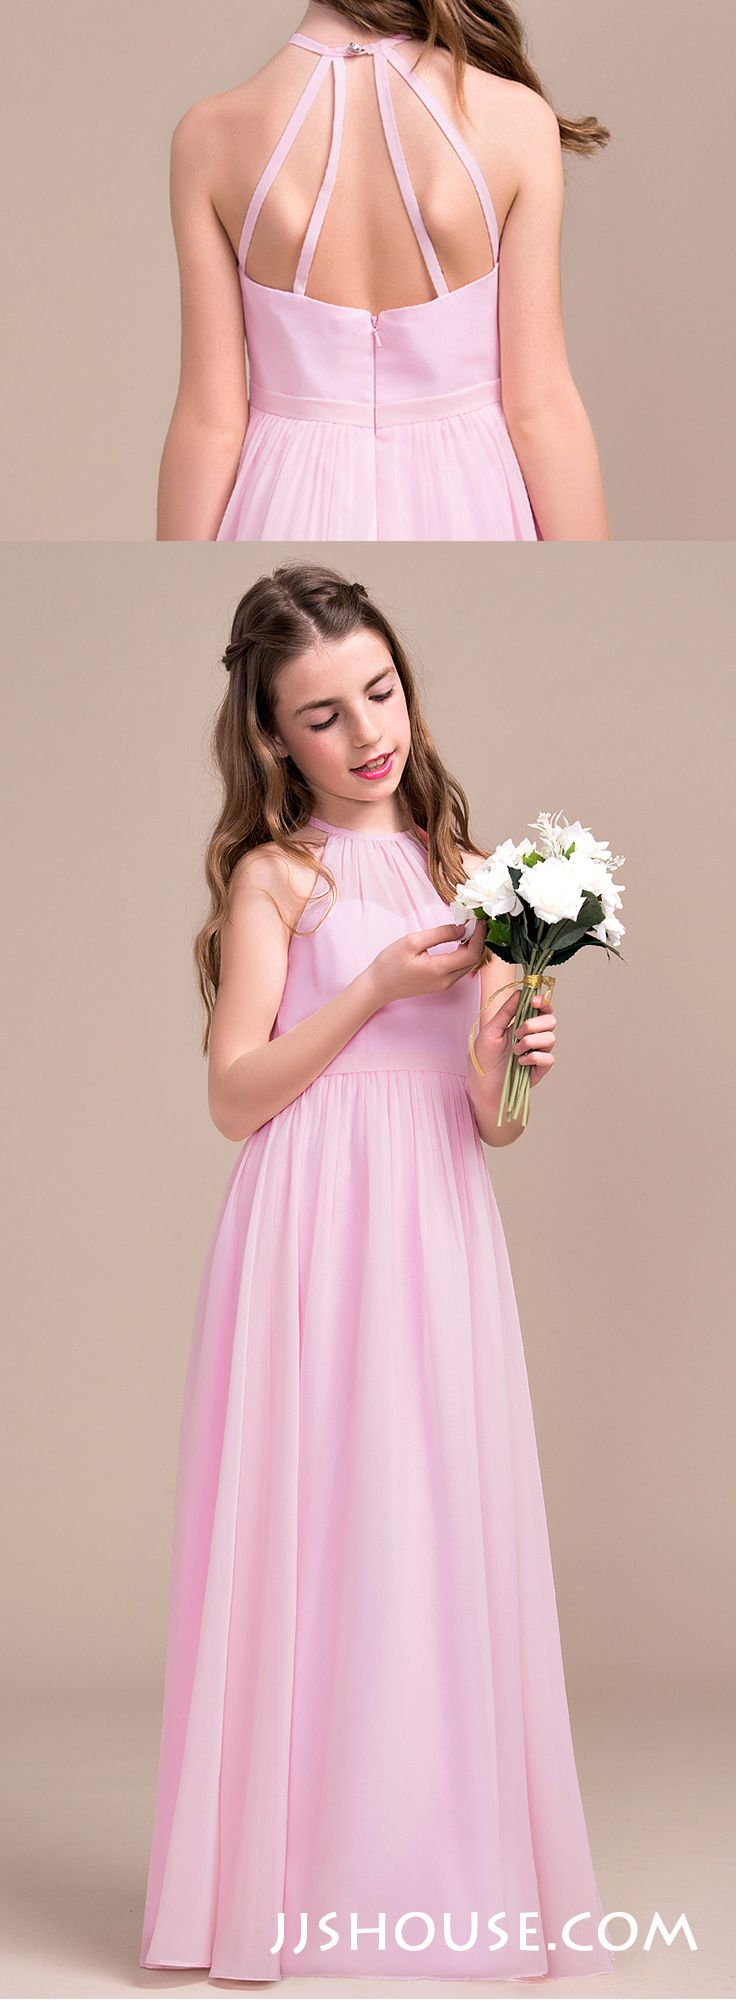 This dress is a lovely dressed-up look for junior bridesmaids ...